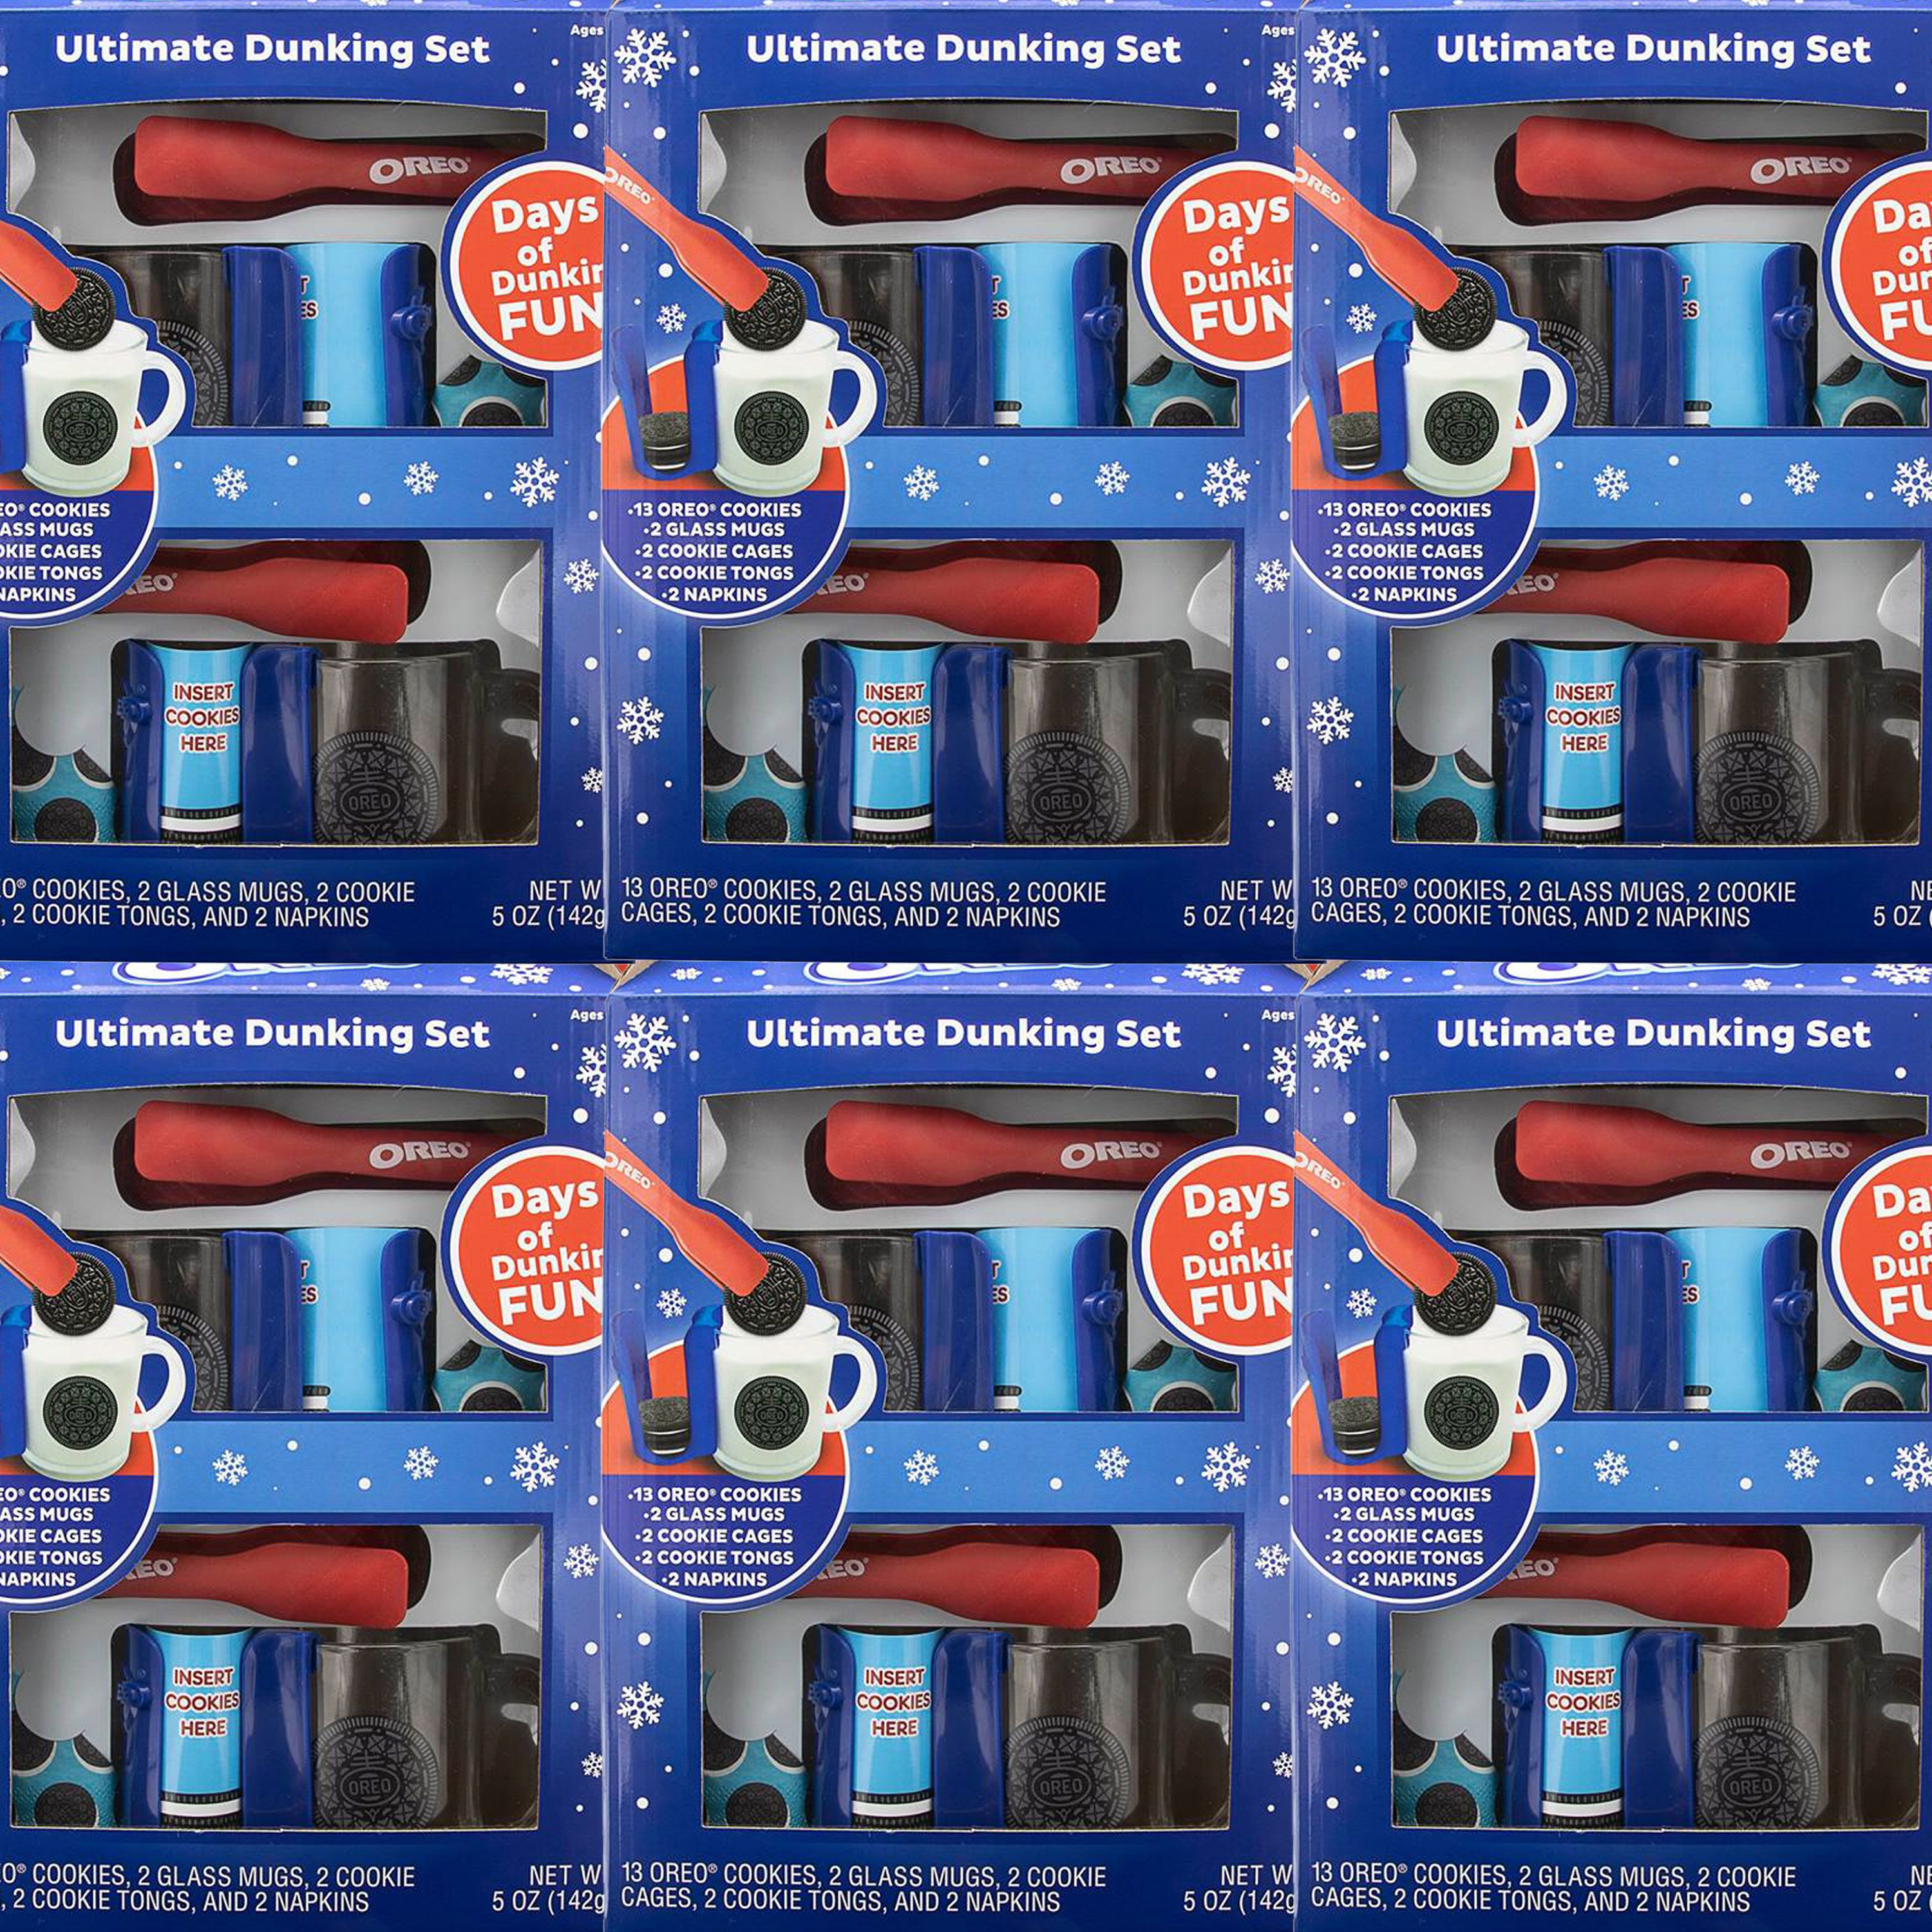 you can buy an oreo ultimate dunking set frankford candy oreo